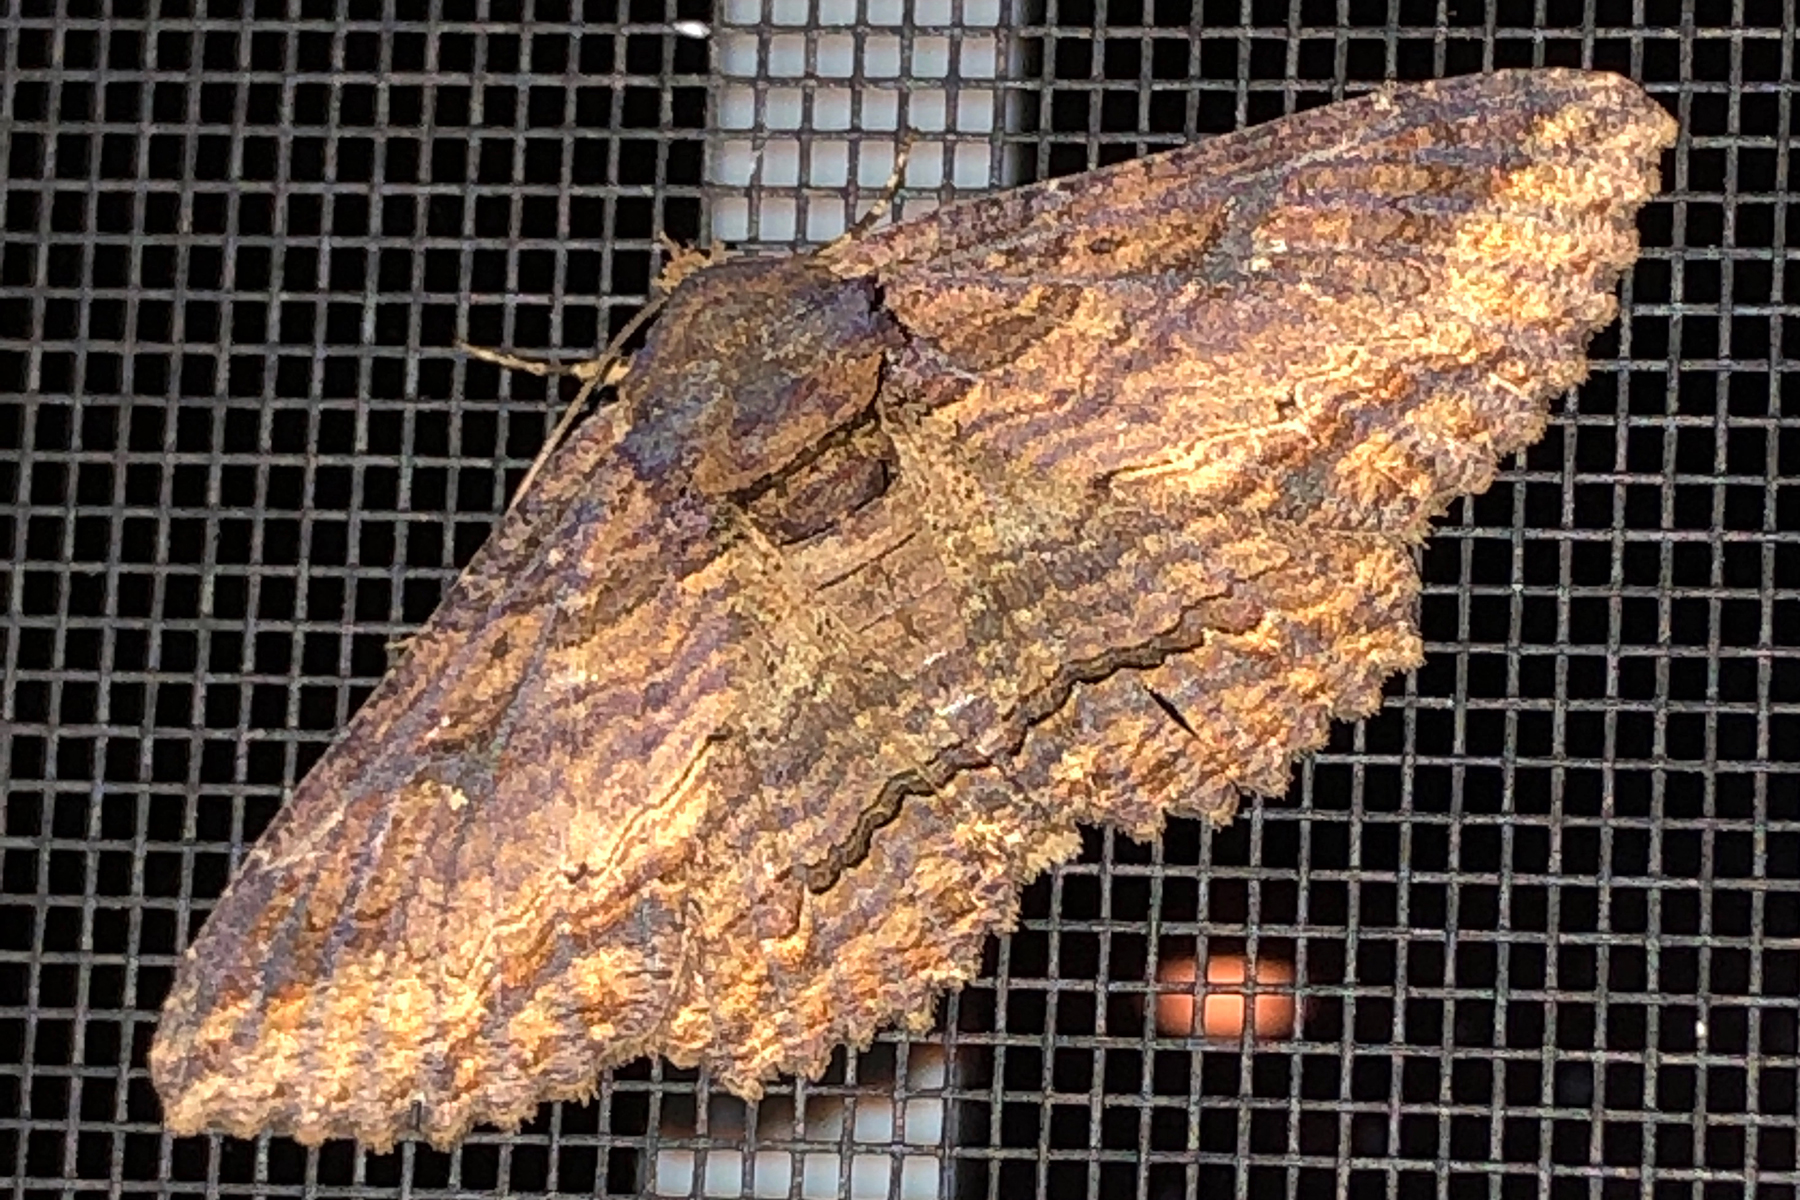 image of Lunate Zale Moth